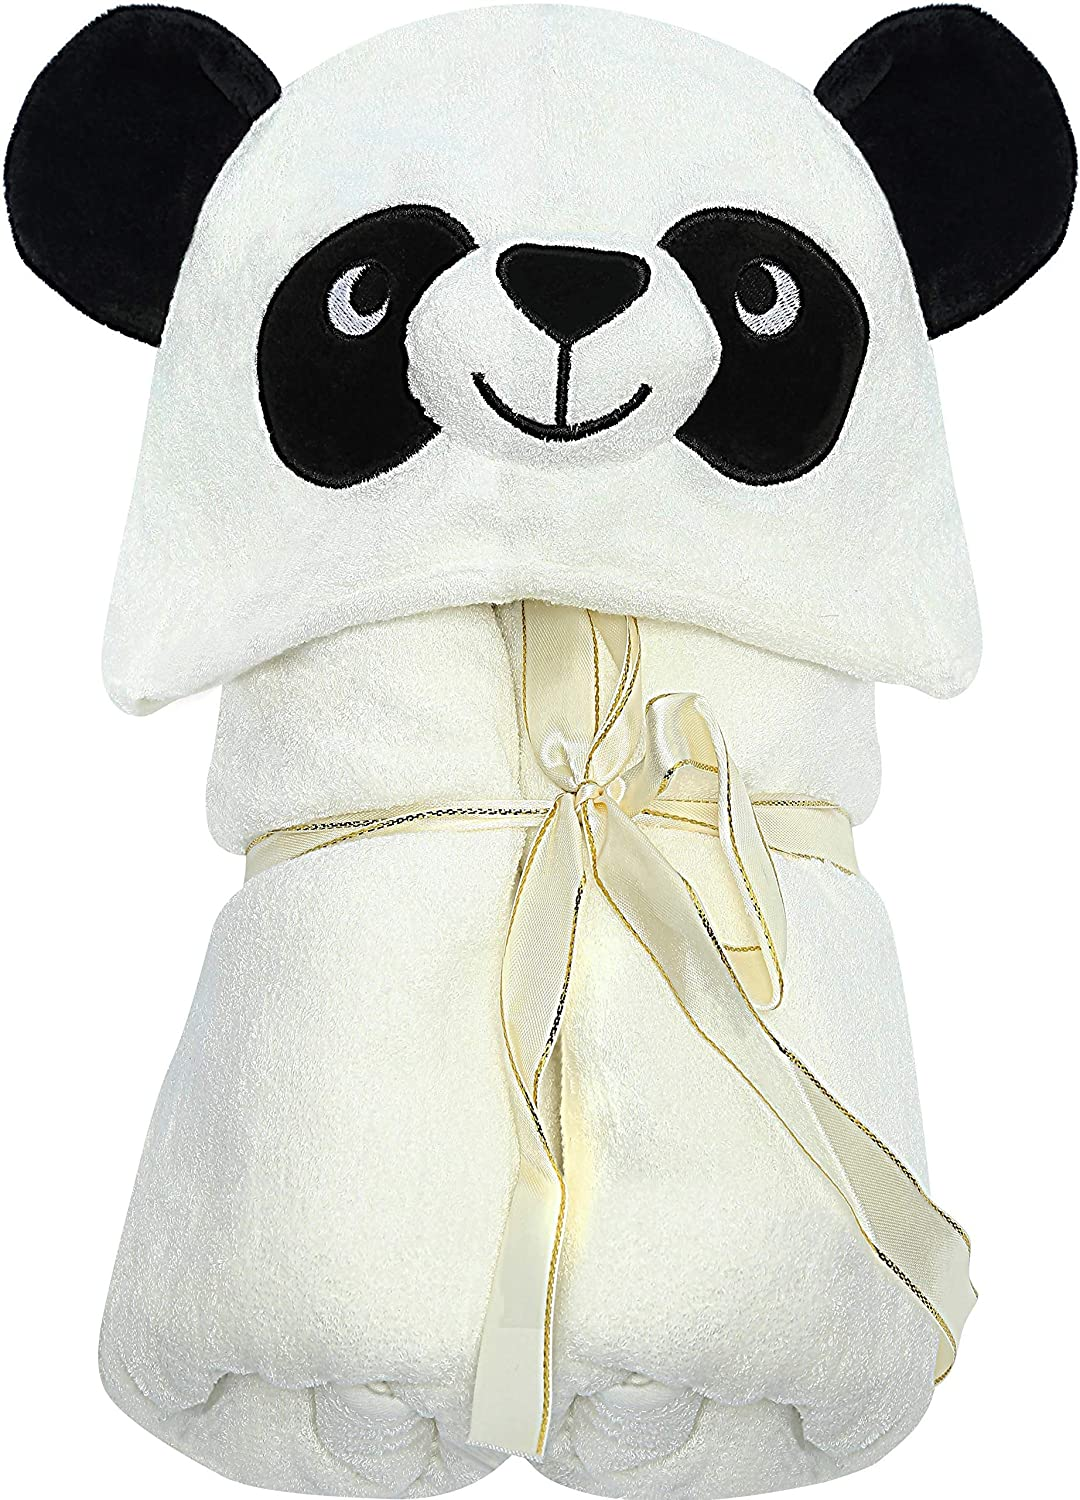 Baby Organic Hooded Panda Towel - Natural Soft Thick & Luxurious Eco-Friendly Bamboo - Big 35 X 35 Inch Ultra Absorbent Bath Robe for Babies & Toddlers - Hypoallergenic for Newborn Skin by LilGoo